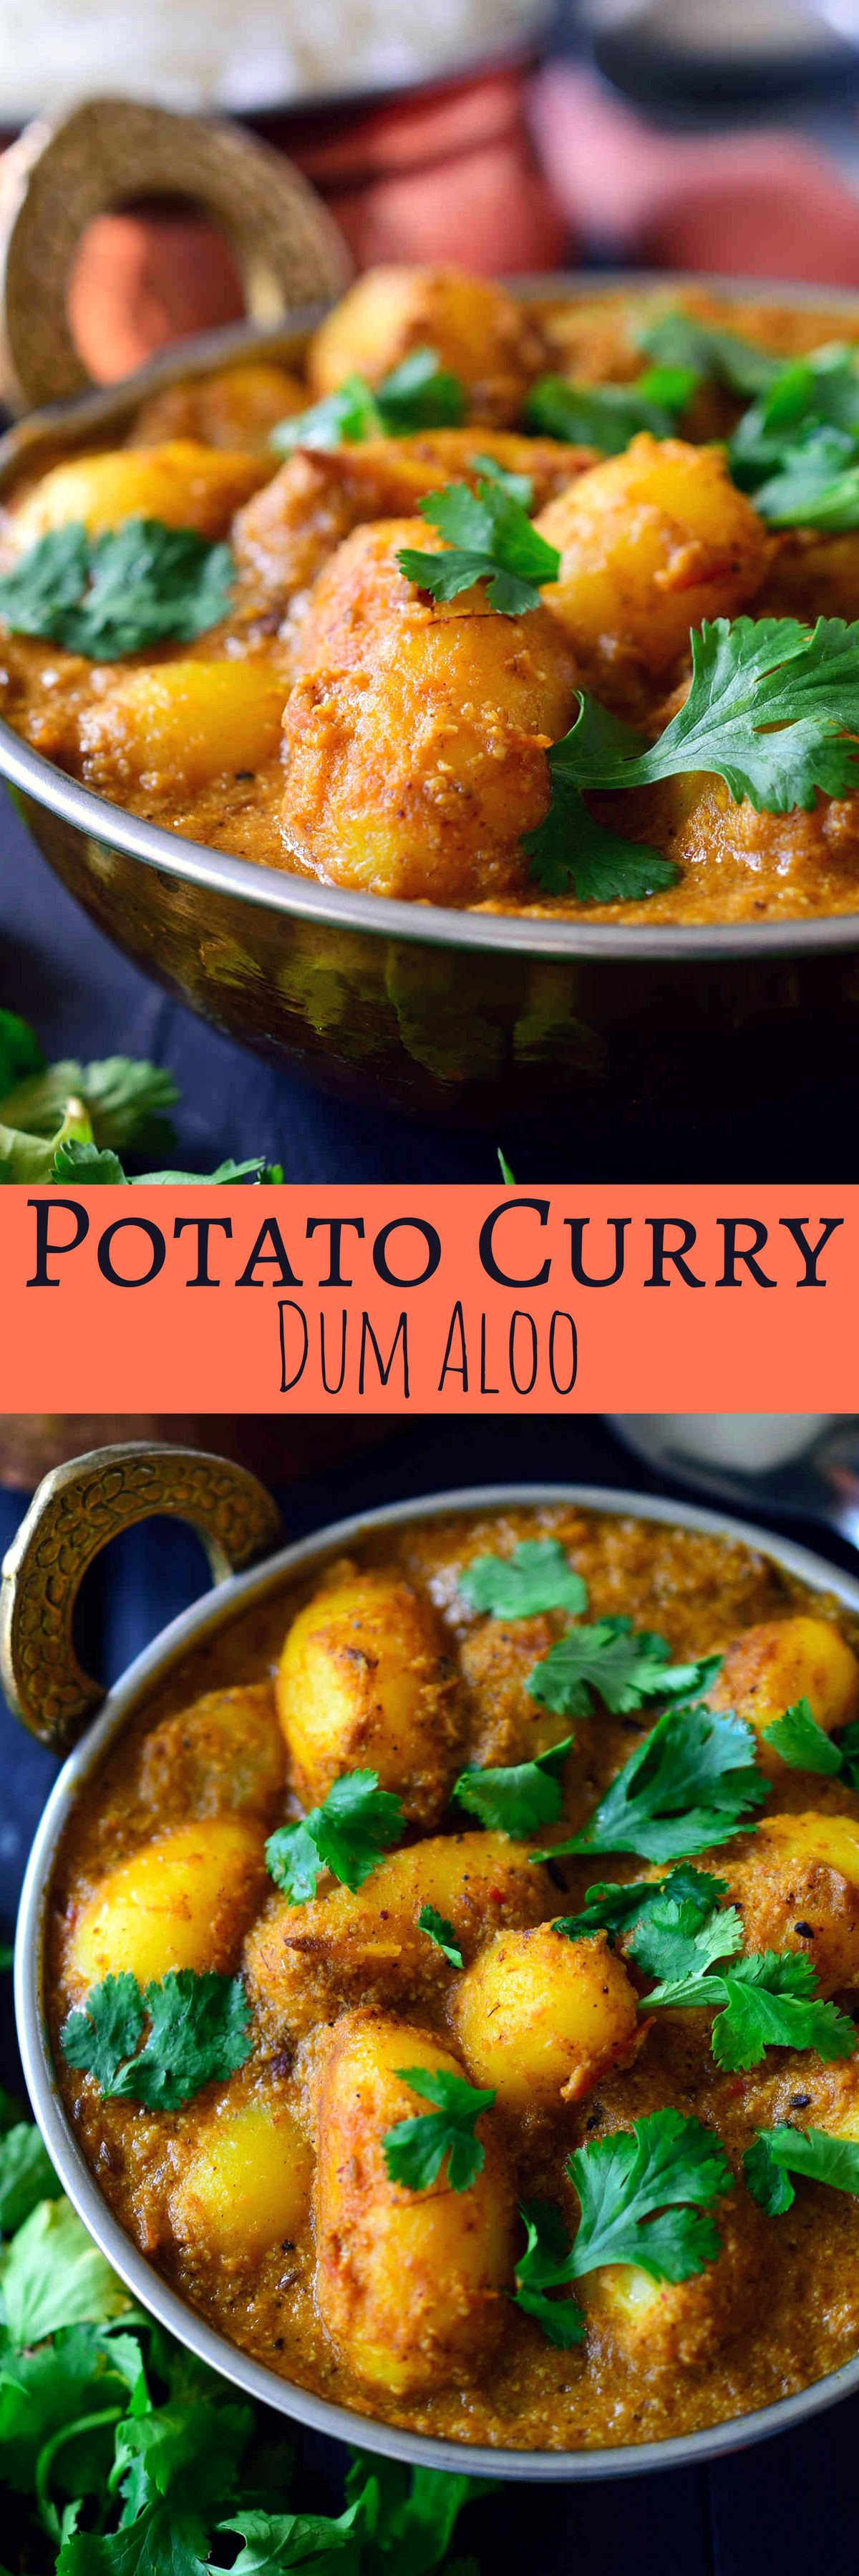 This spicy vegan potato curry